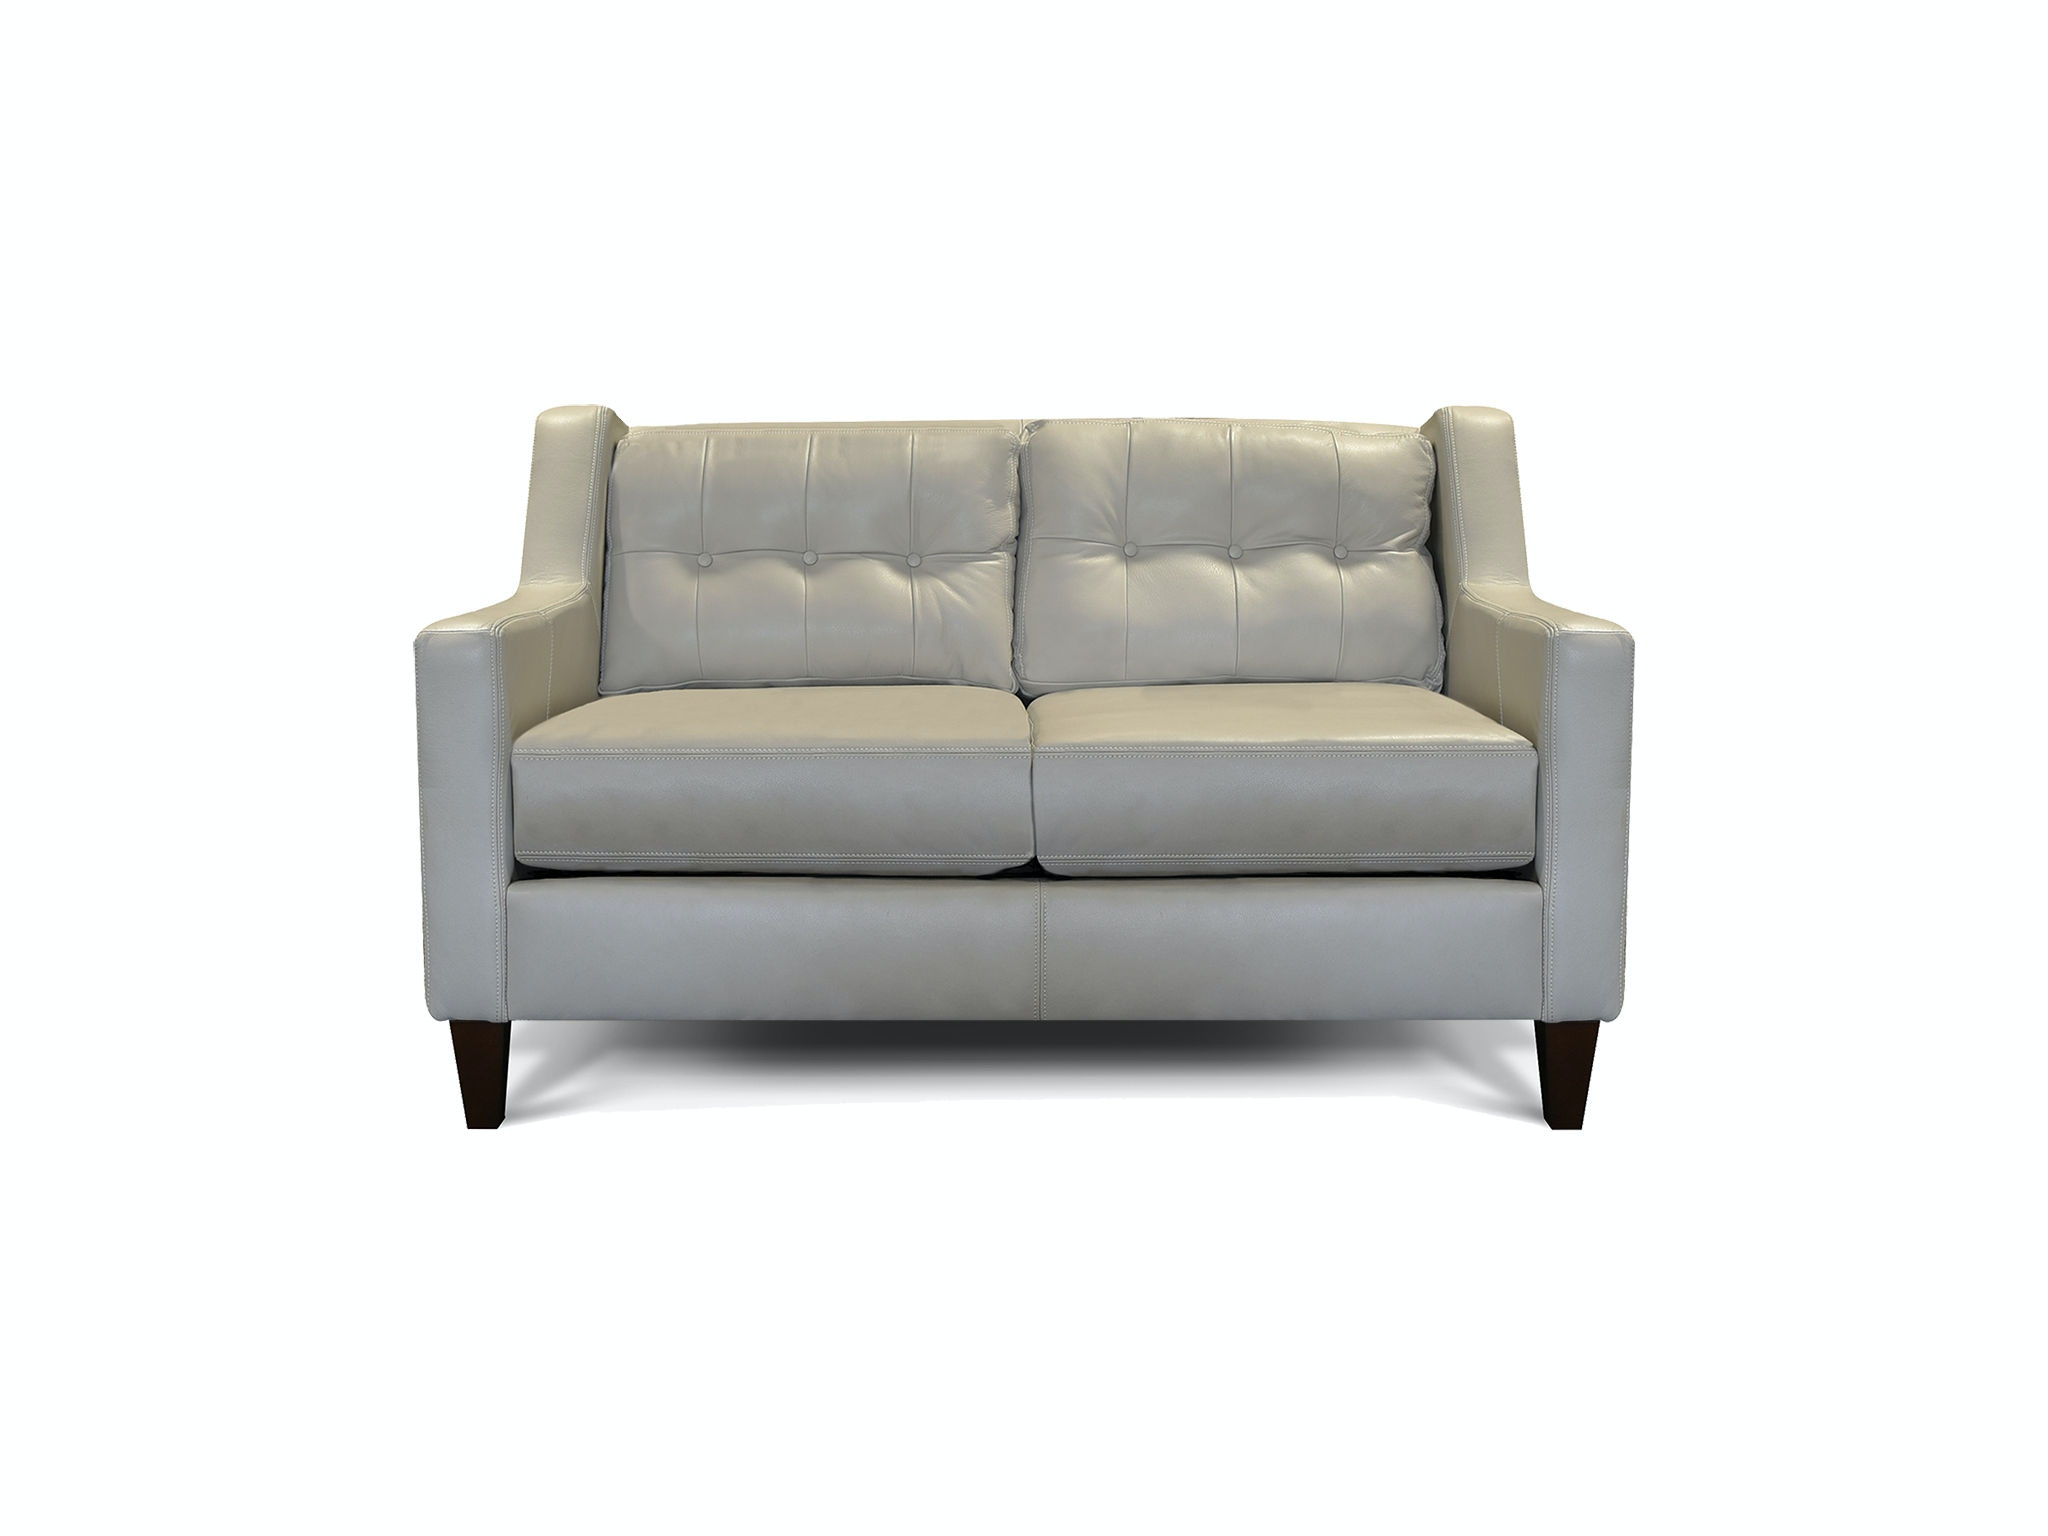 England Living Room Brody Leather Loveseat 6l06al Robinson S